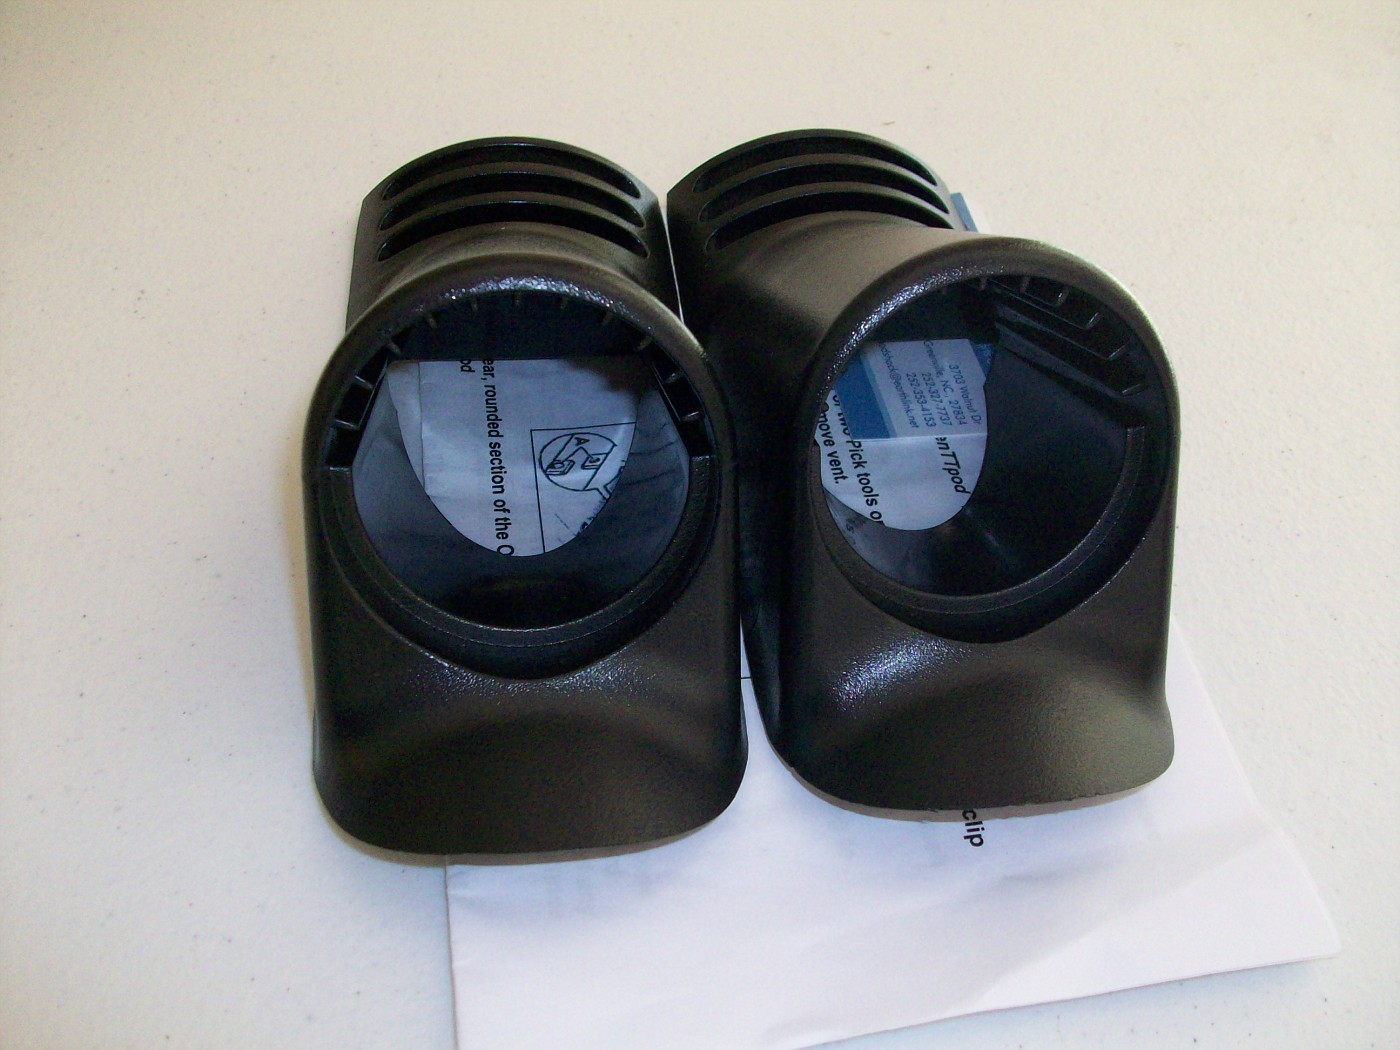 SOLD $30 Top Dash Vent Gauge Pod Kit (2) new with instructions